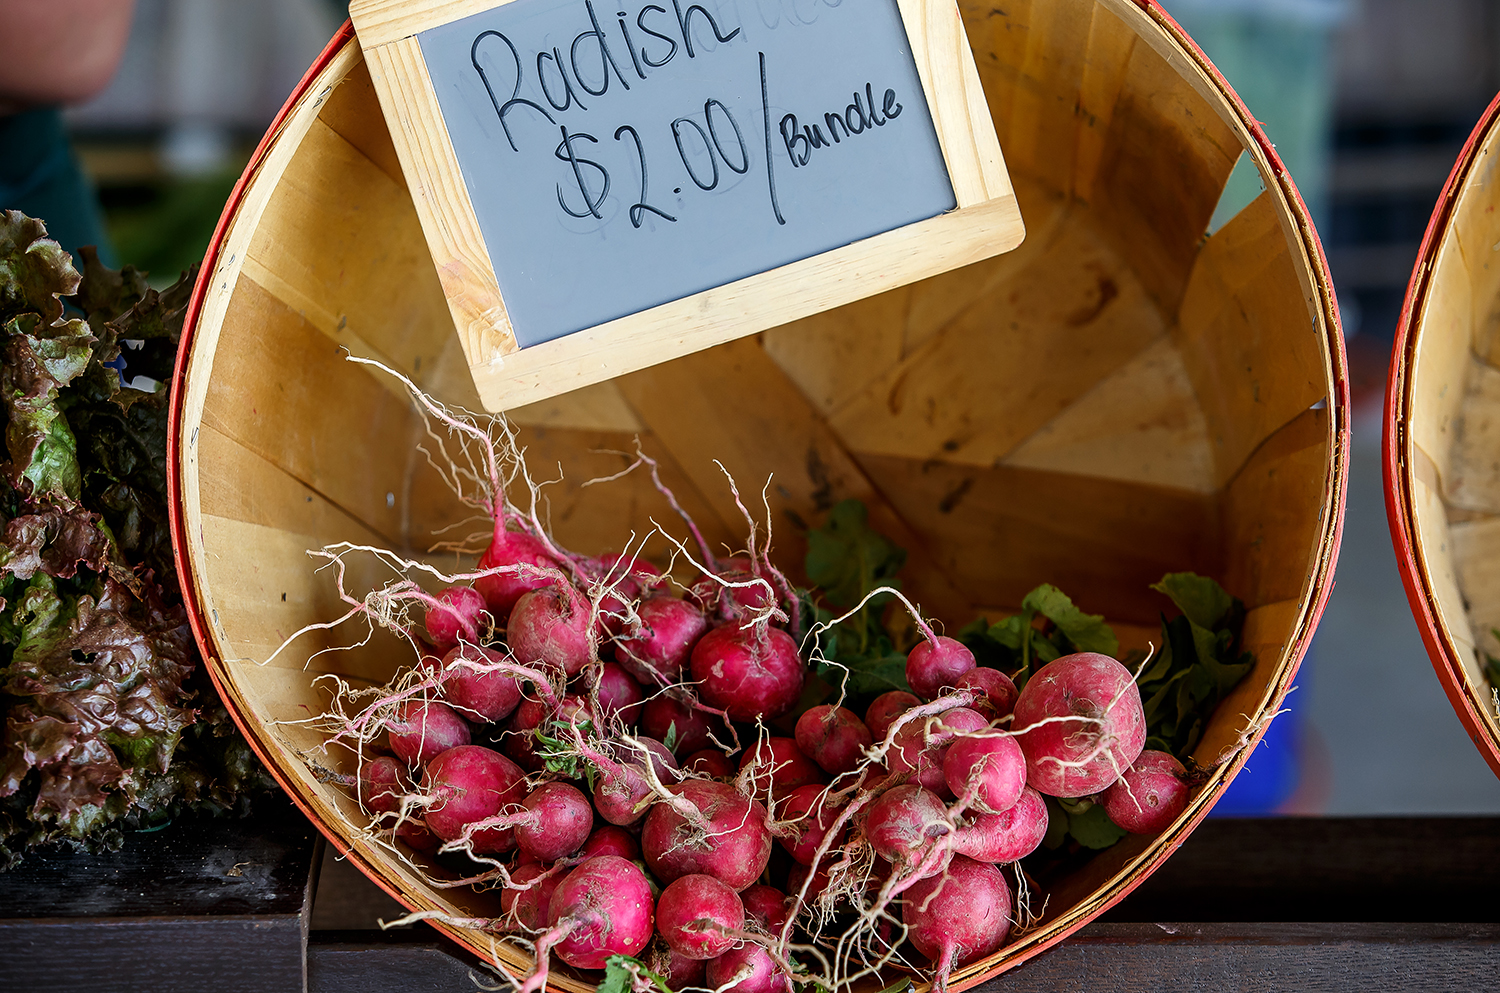 Radishes, green onions, broccoli and red sail lettuce for sale at Spilt Rail Garden's booth at the Illinois Products Farmers' Market at the Illinois State Fairgrounds, Thursday, June 5, 2014. Justin L. Fowler/The State Journal-Register